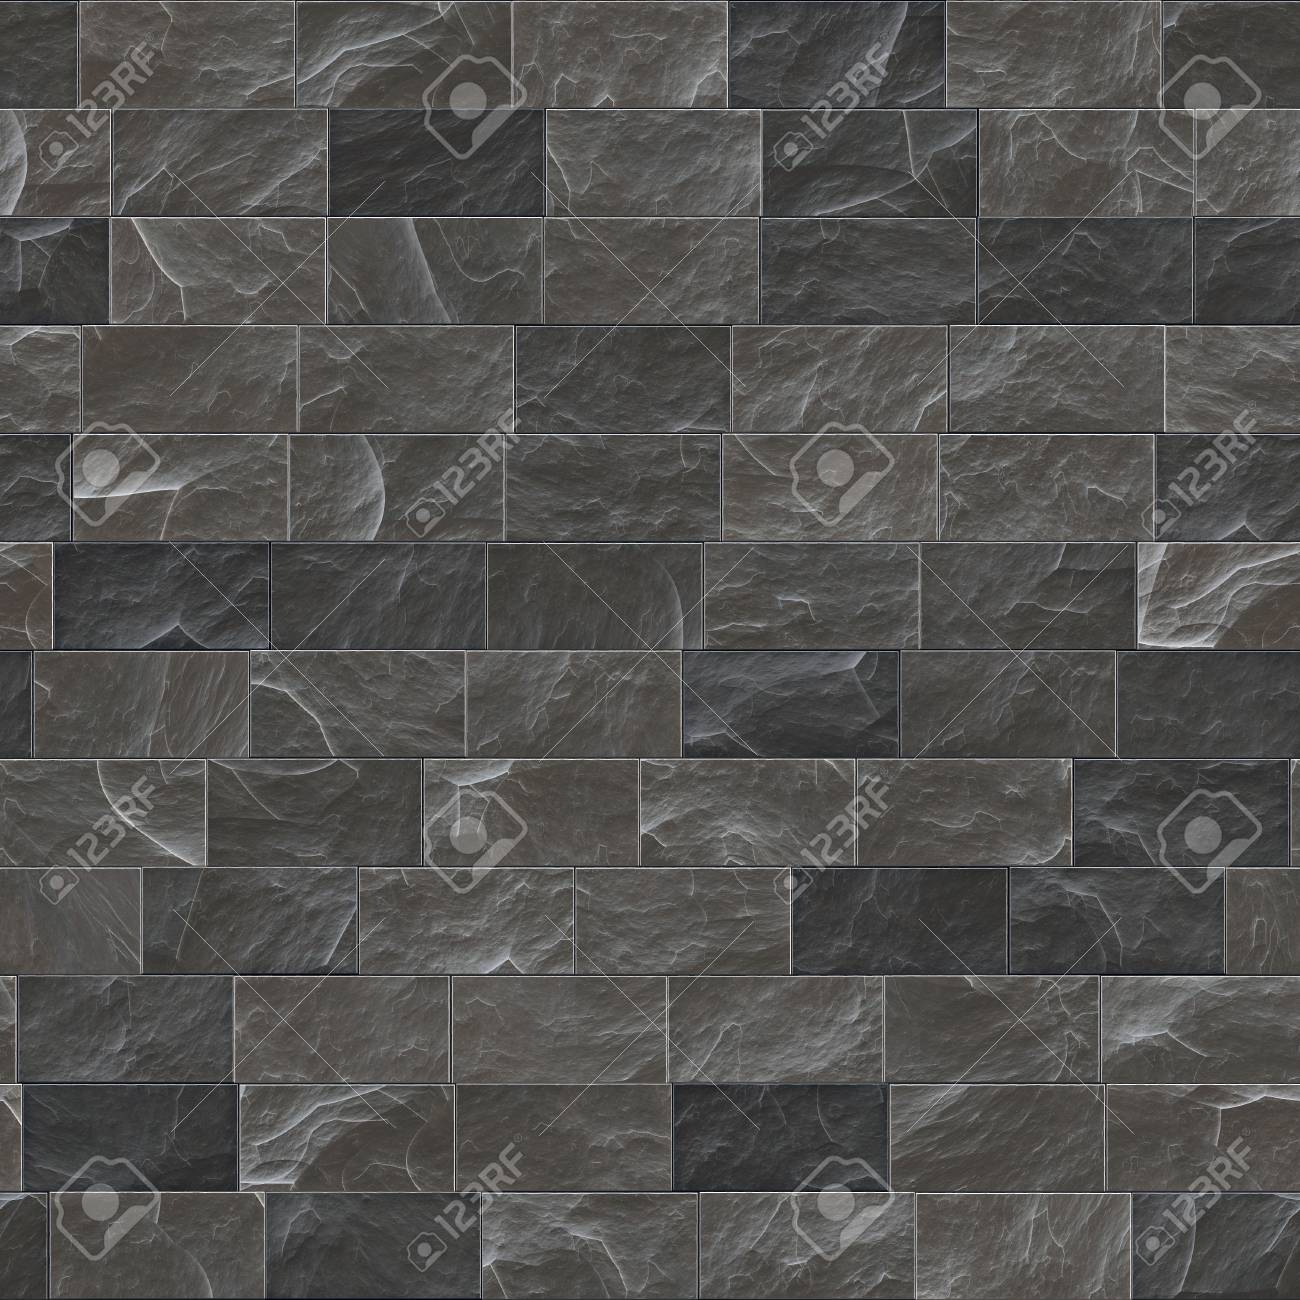 . Texture of a dark stone wall  Seamless background